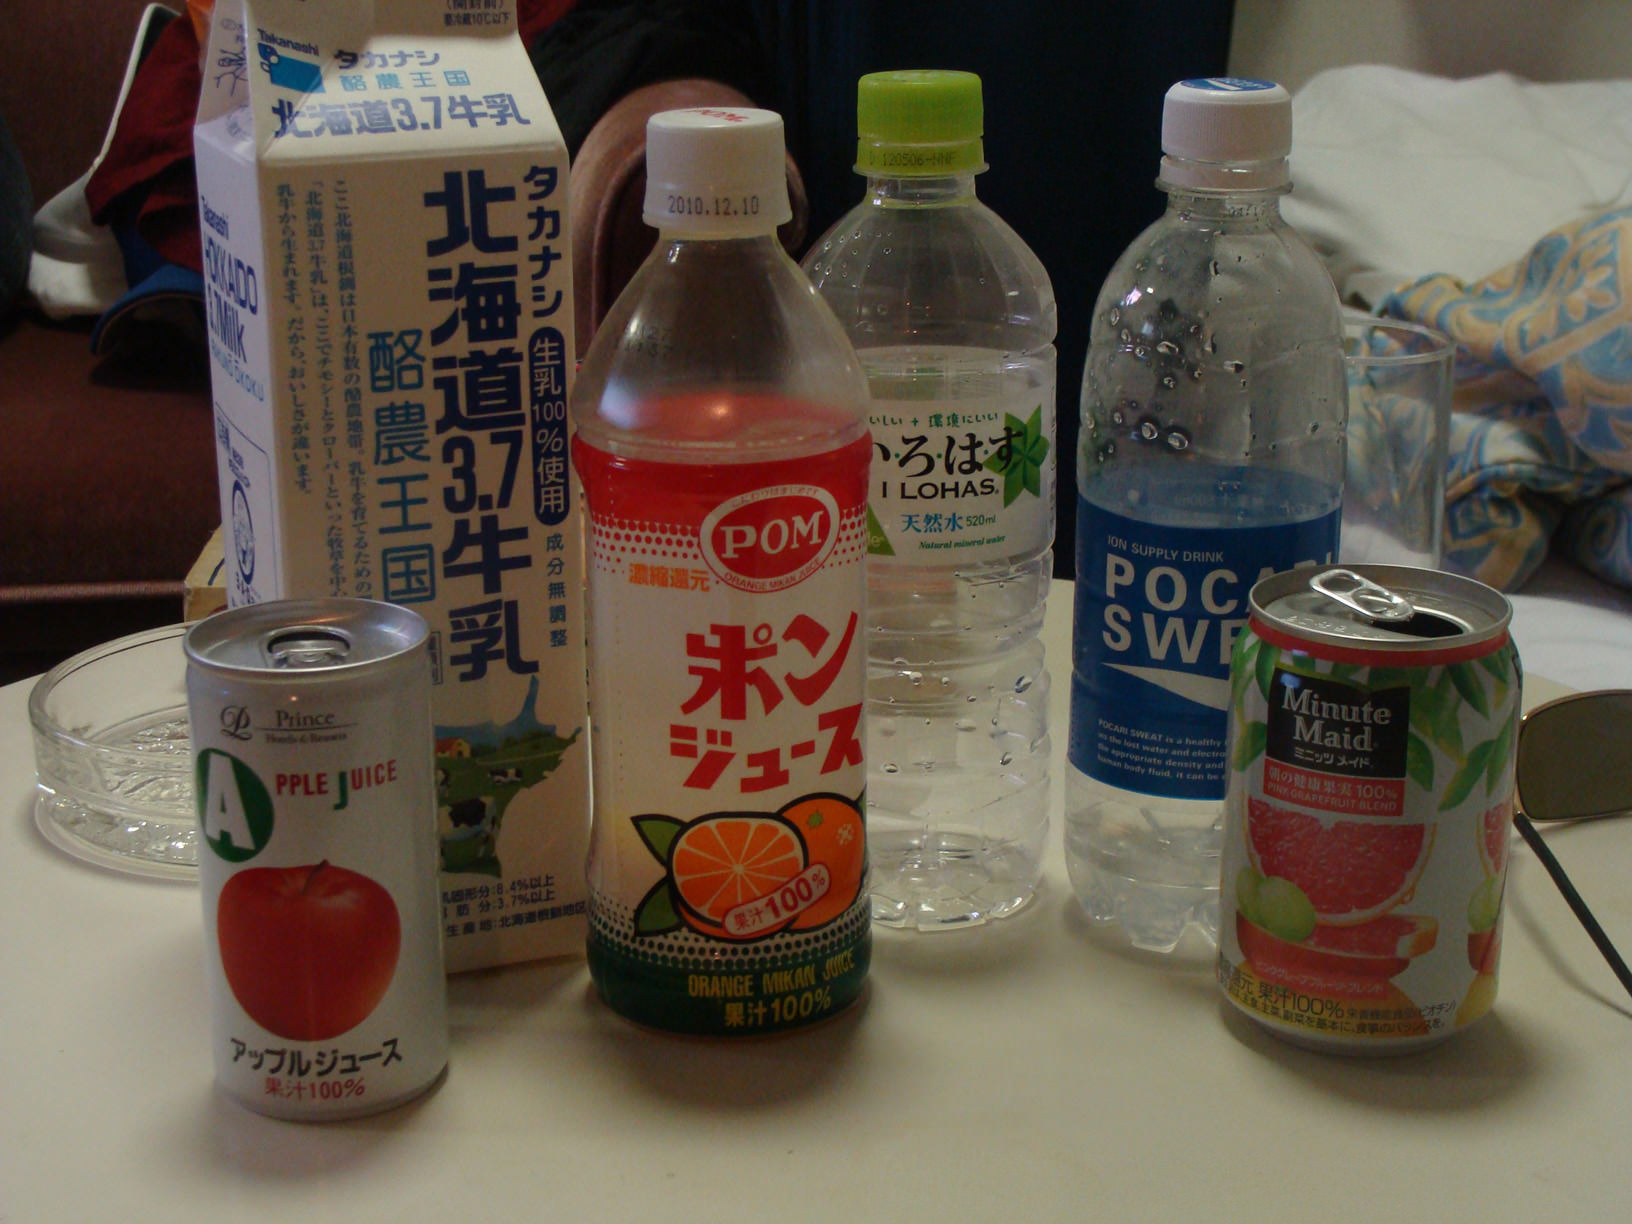 All the drinks we had on July 17th, 2010.